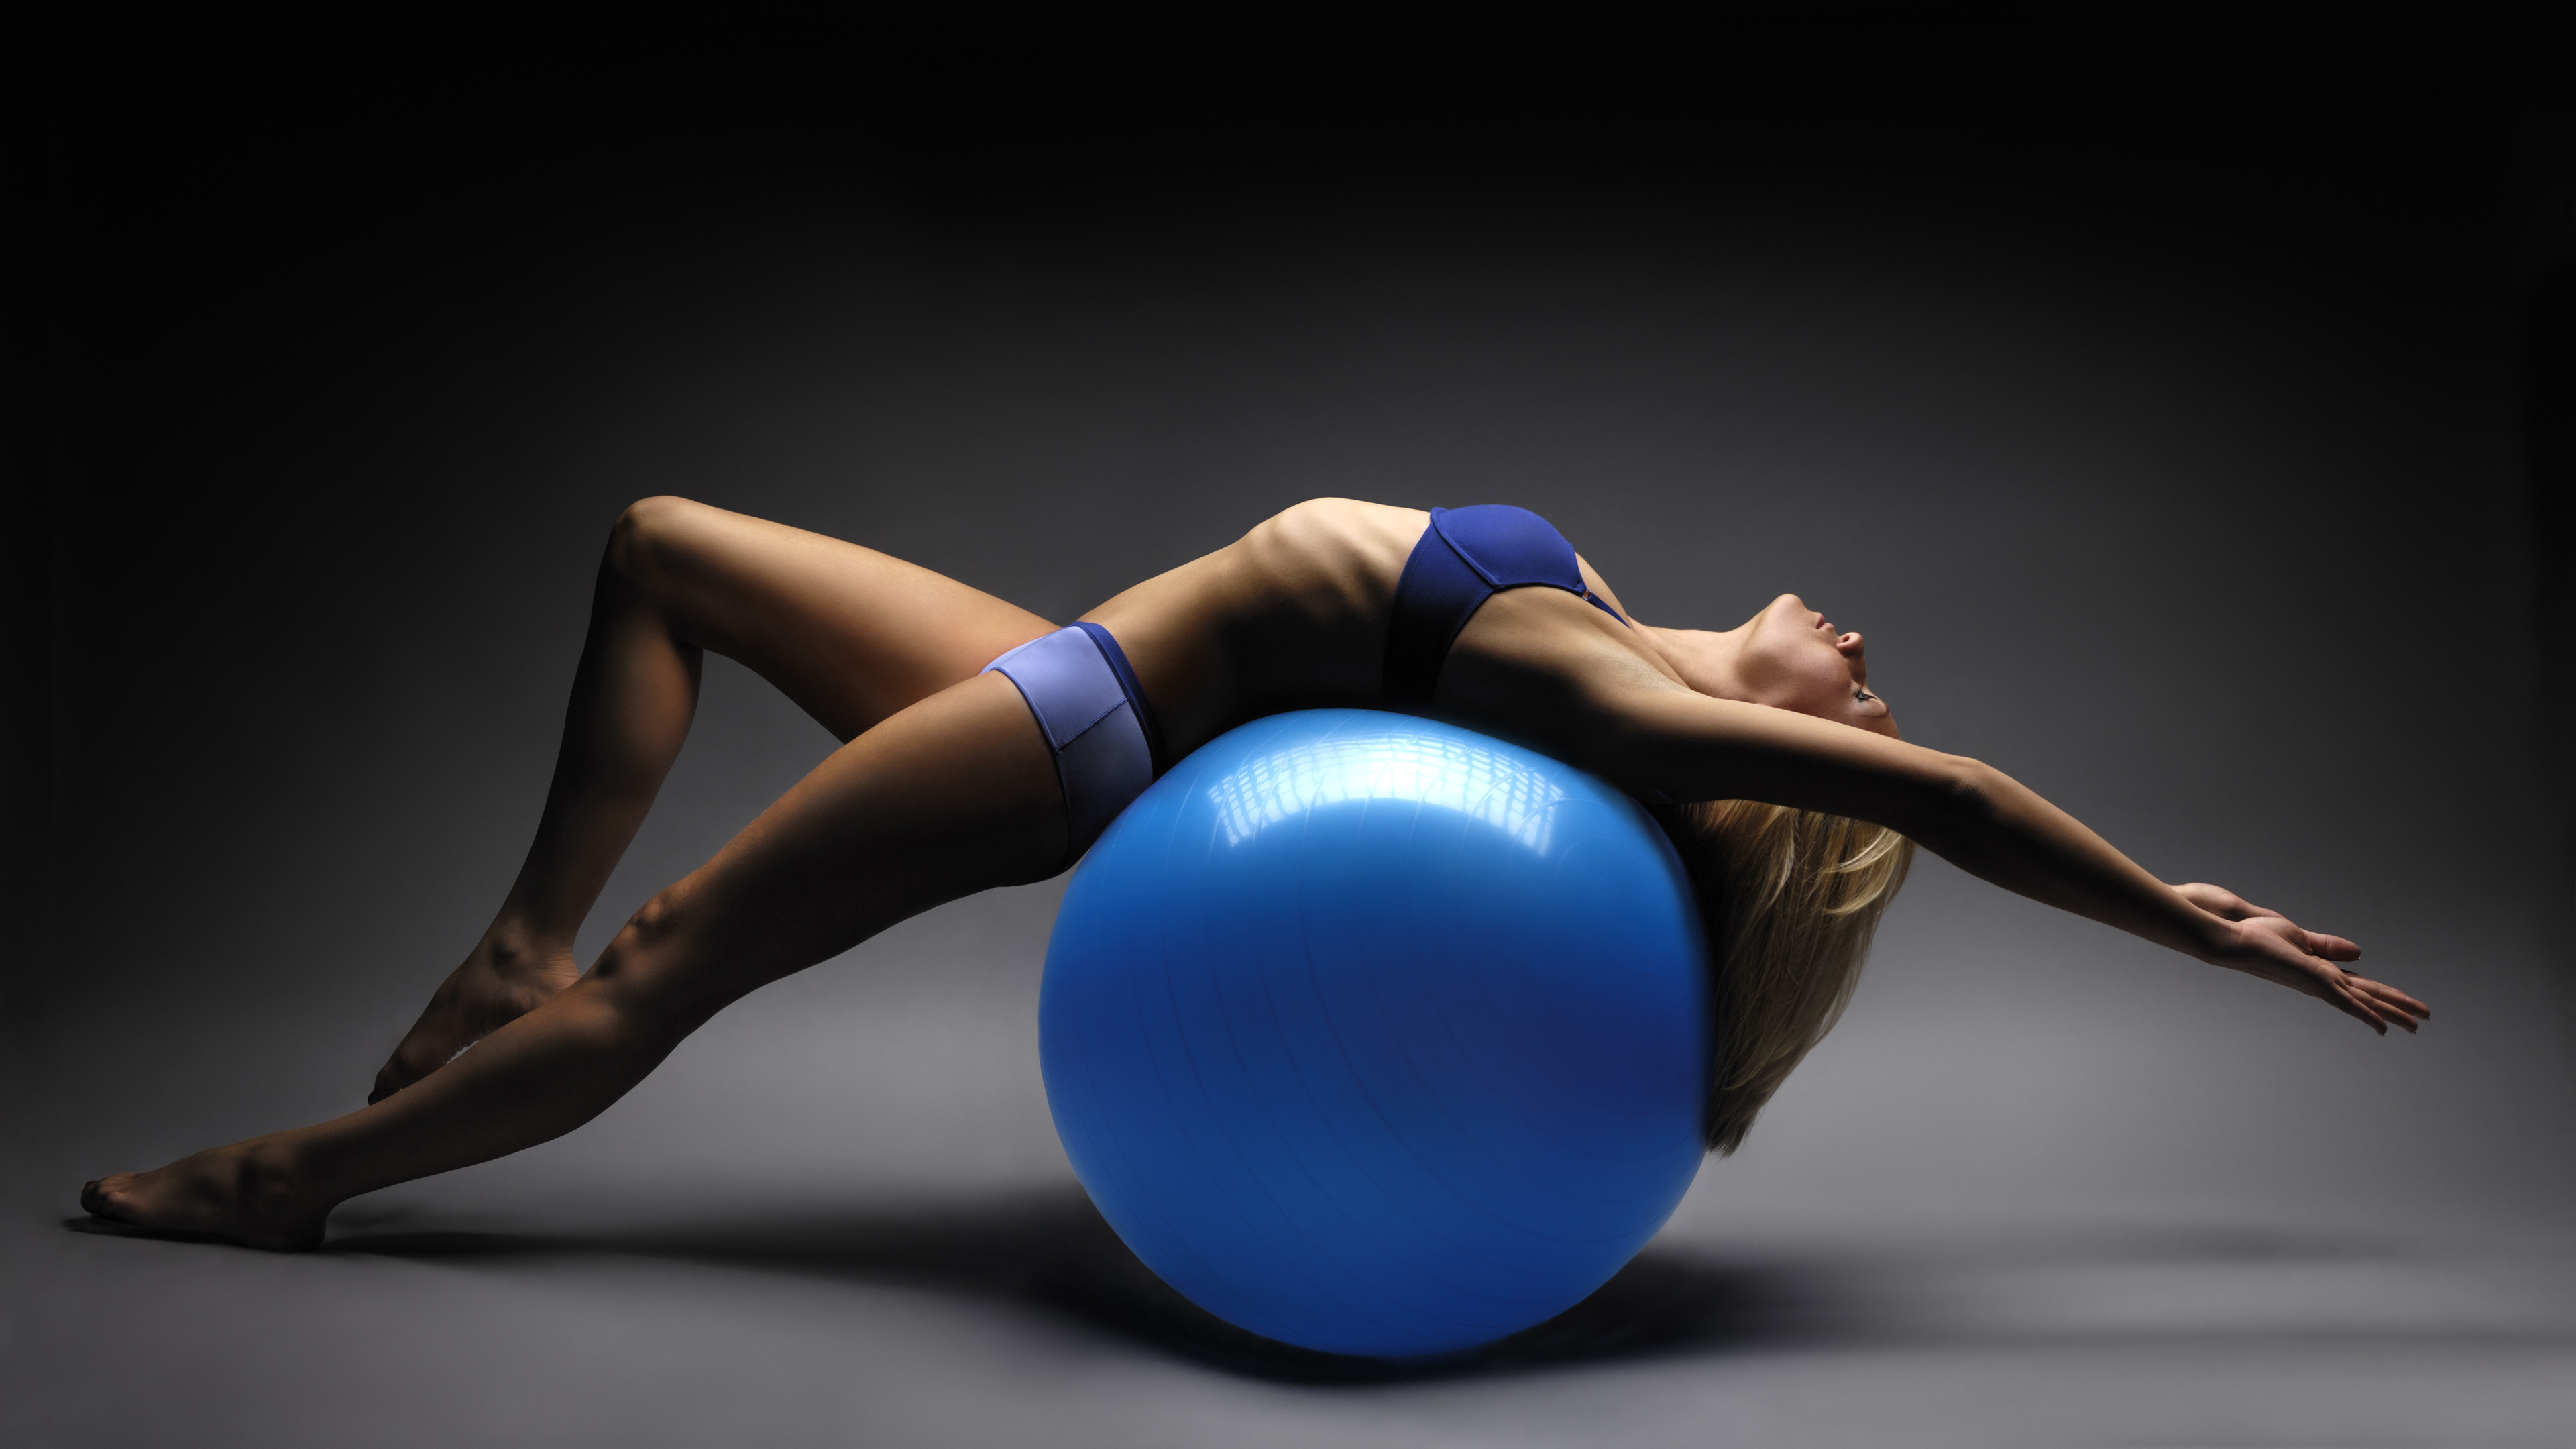 girl-training-on-gym-ball_188